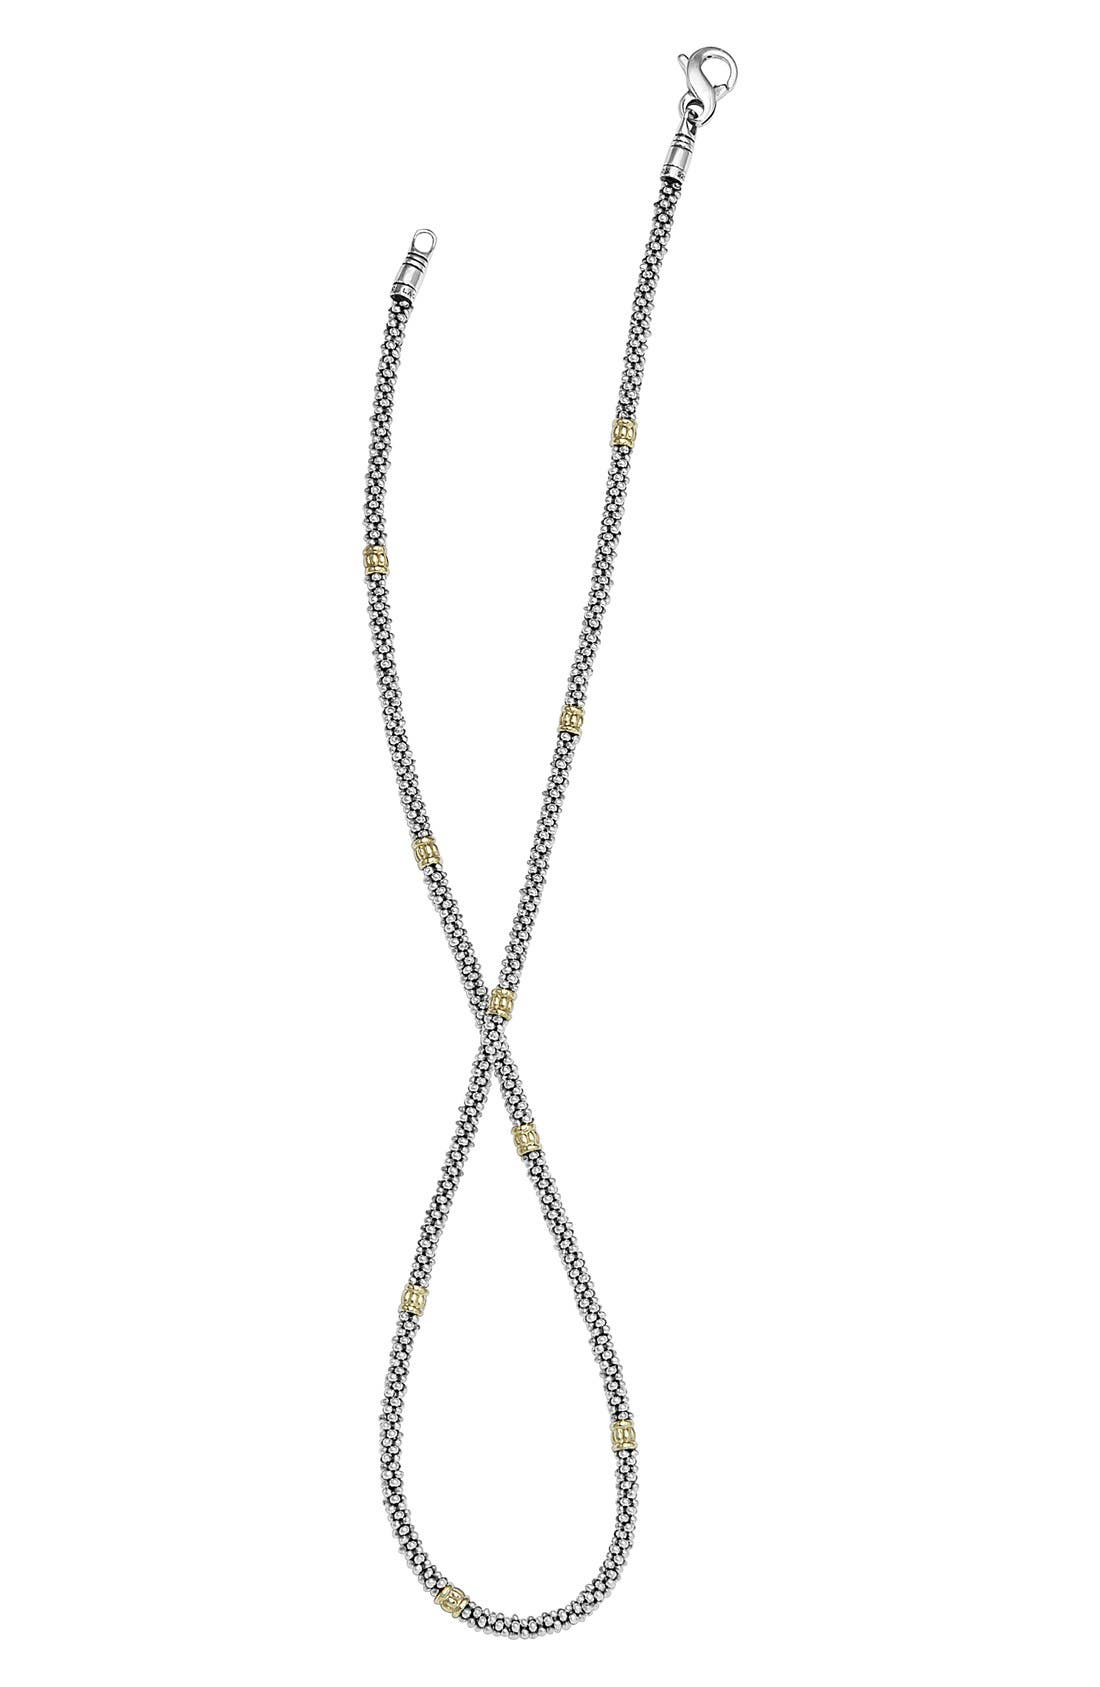 Caviar Rope Necklace,                             Alternate thumbnail 3, color,                             Silver/Gold